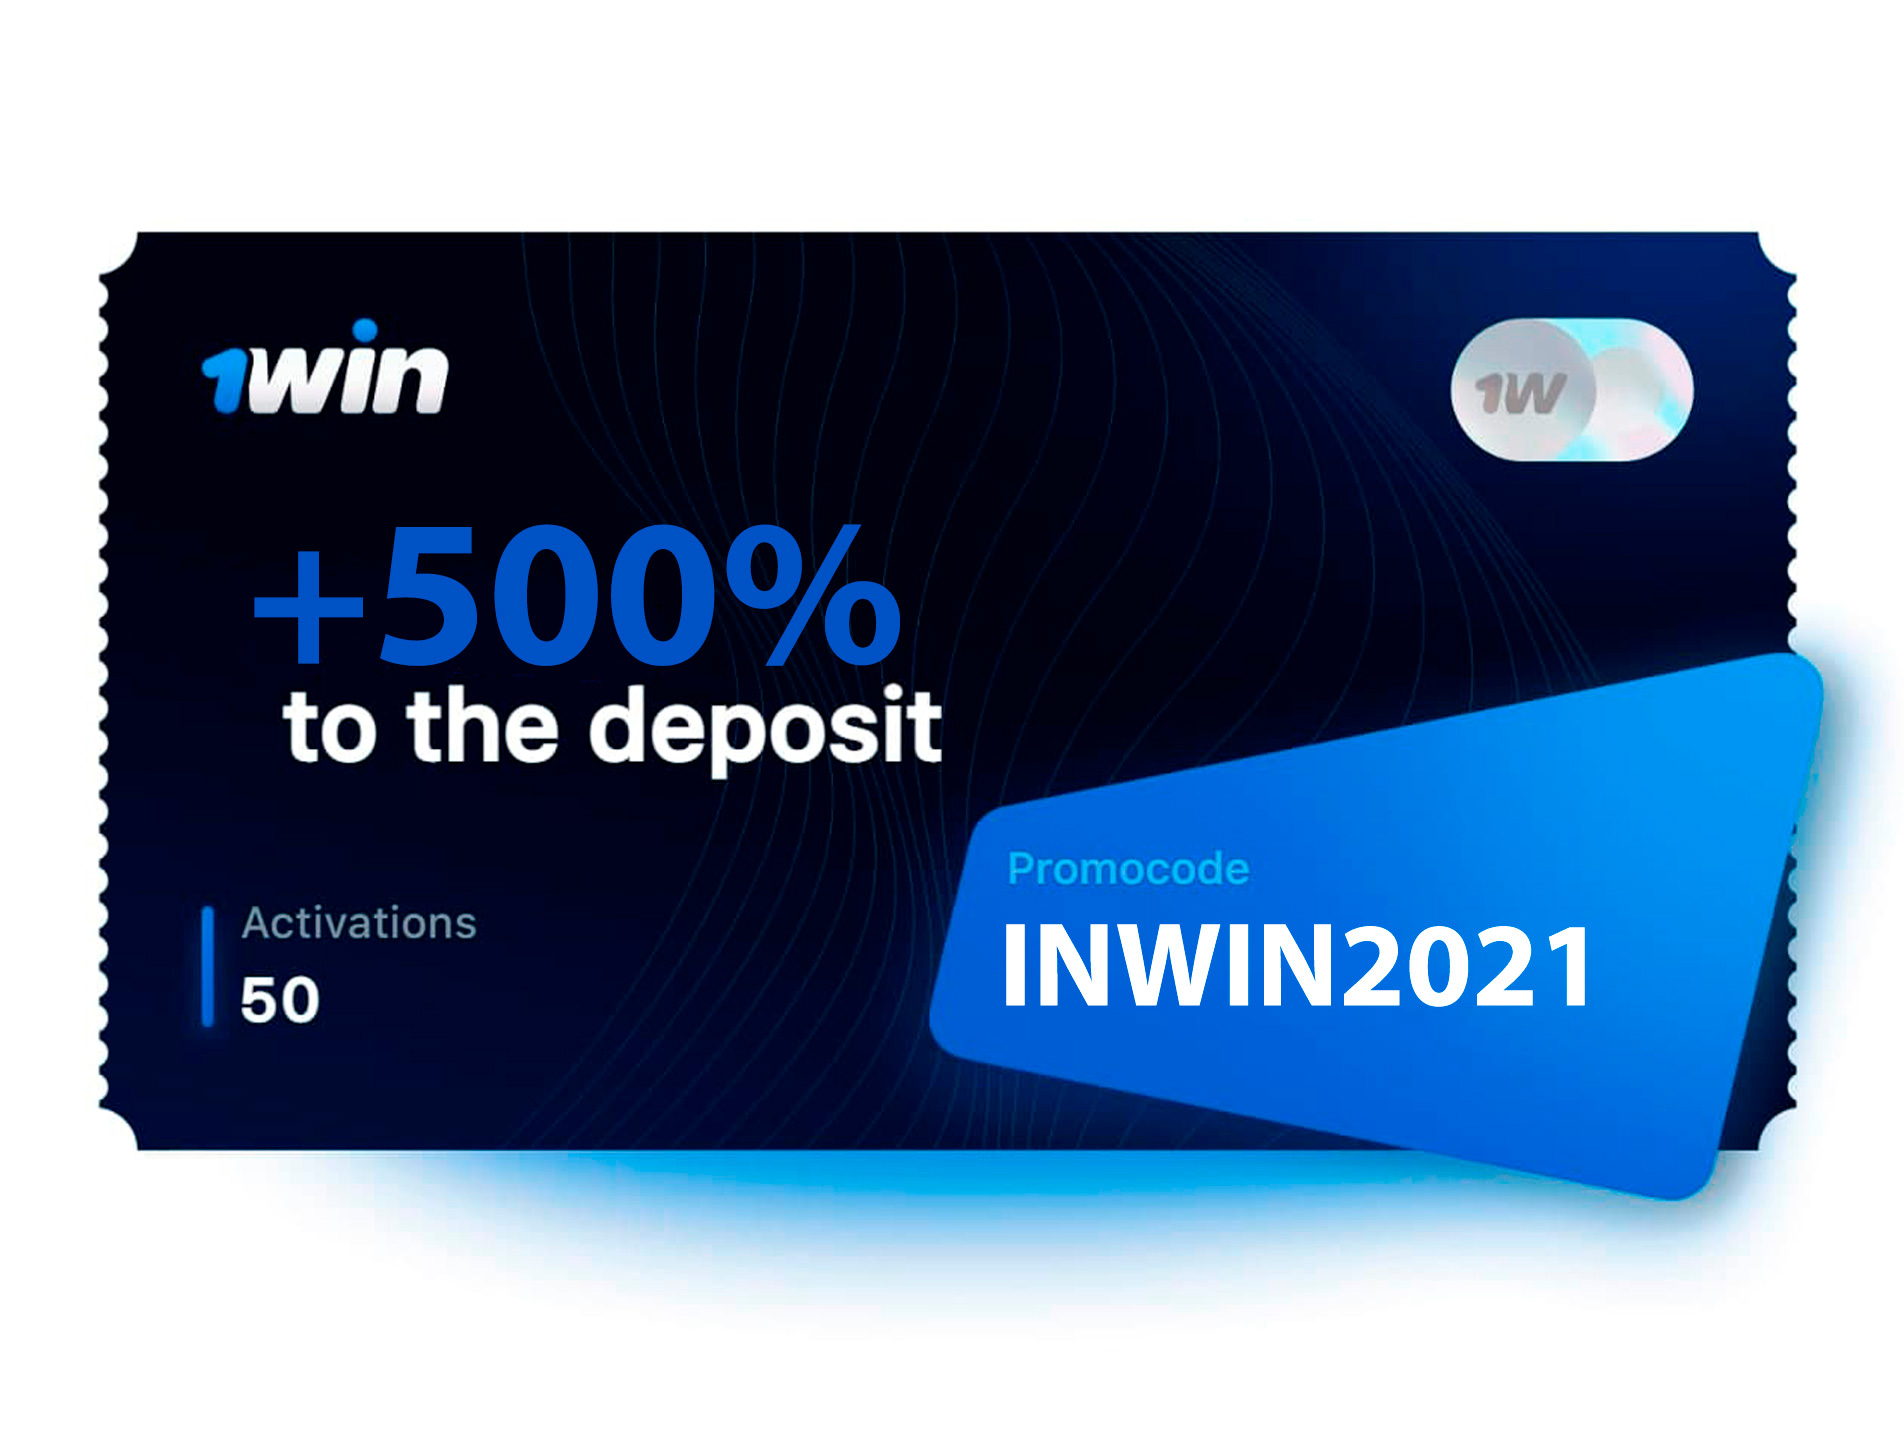 Use our promo code INWIN2021 for a bonus of INR 75,000.